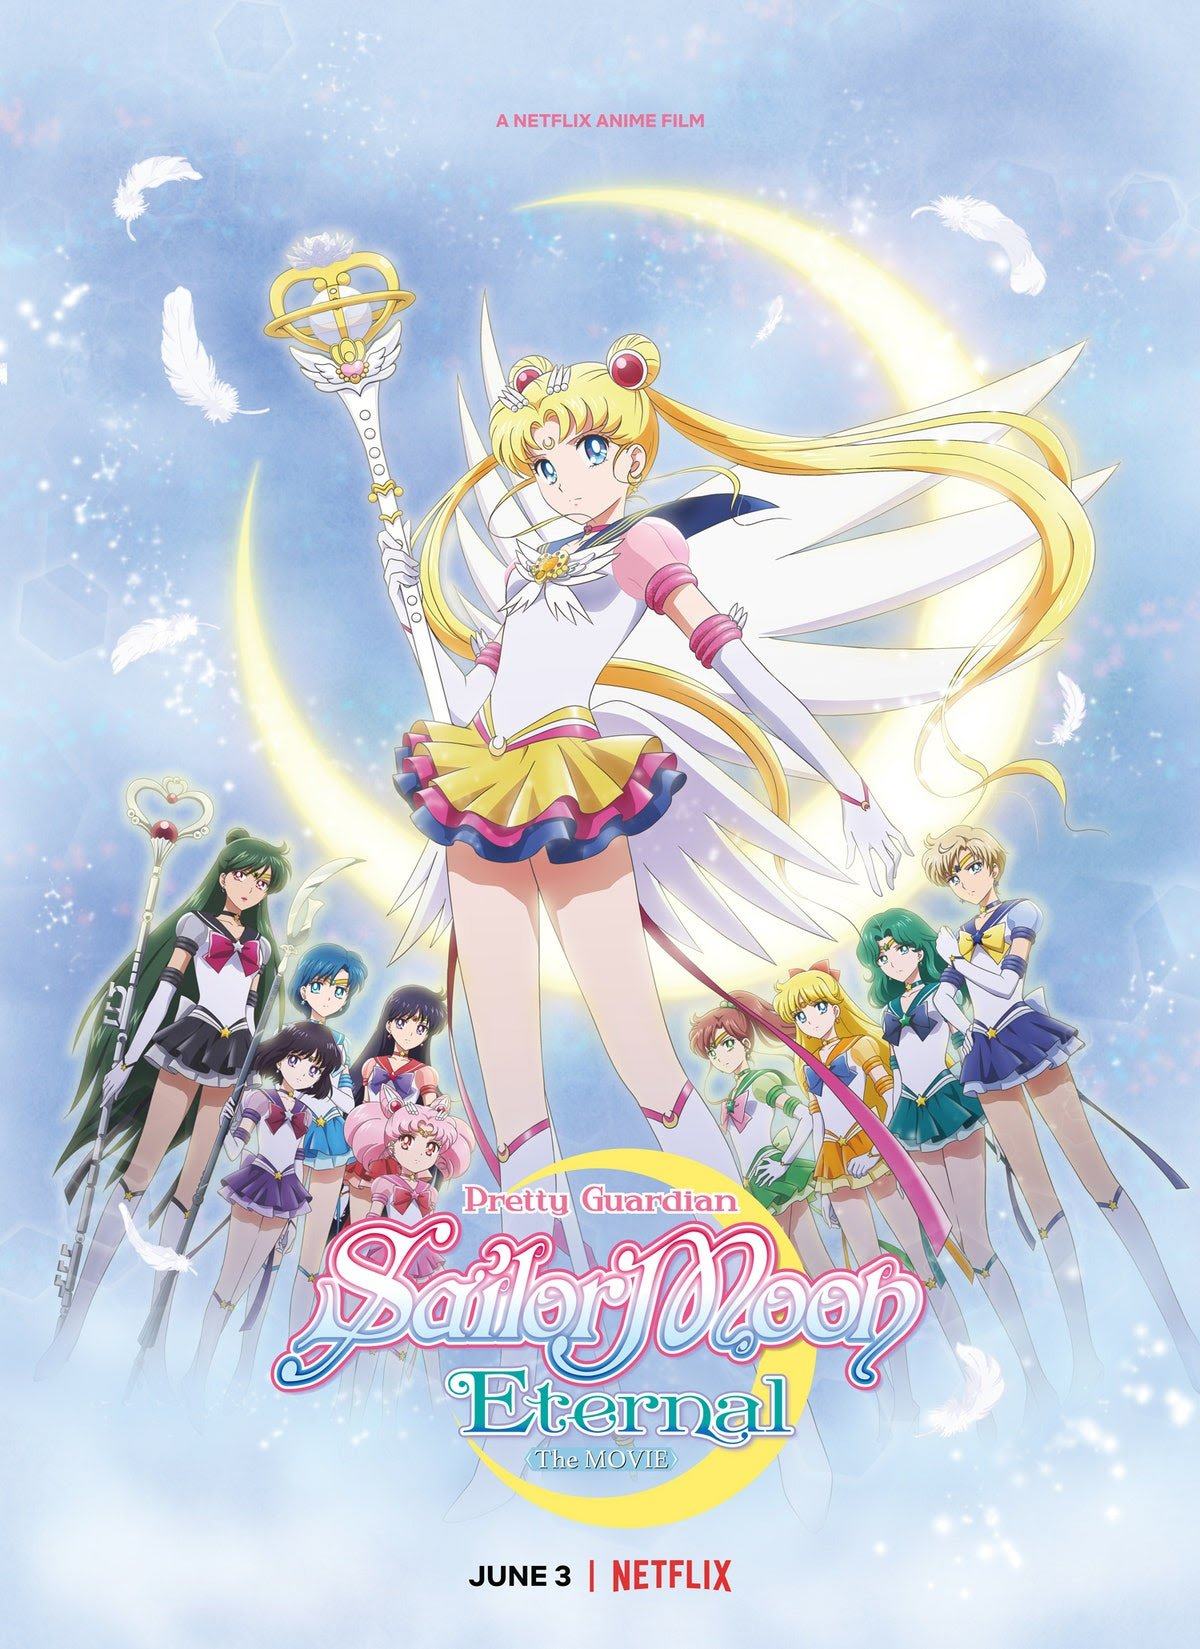 """Netflix Releases Trailer for """"Pretty Guardian Sailor Moon Eternal The Movie"""" !!!  Look it here !!!"""